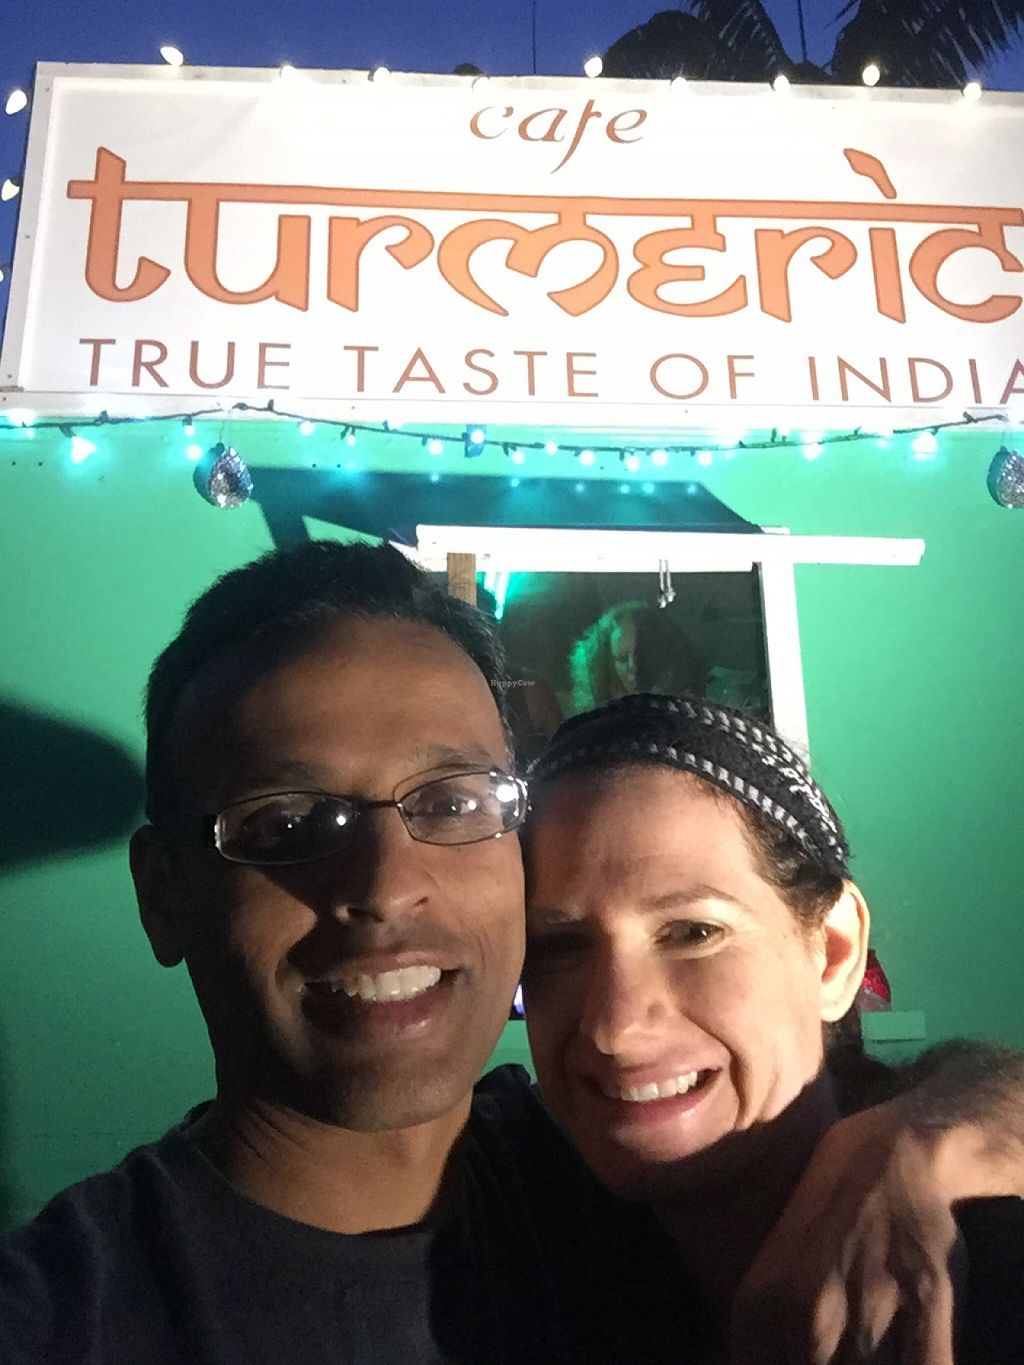 """Photo of Cafe Turmeric - Food Truck  by <a href=""""/members/profile/mangelm26"""">mangelm26</a> <br/>An amazing find on the North Shore!!  <br/> February 22, 2016  - <a href='/contact/abuse/image/69679/137343'>Report</a>"""